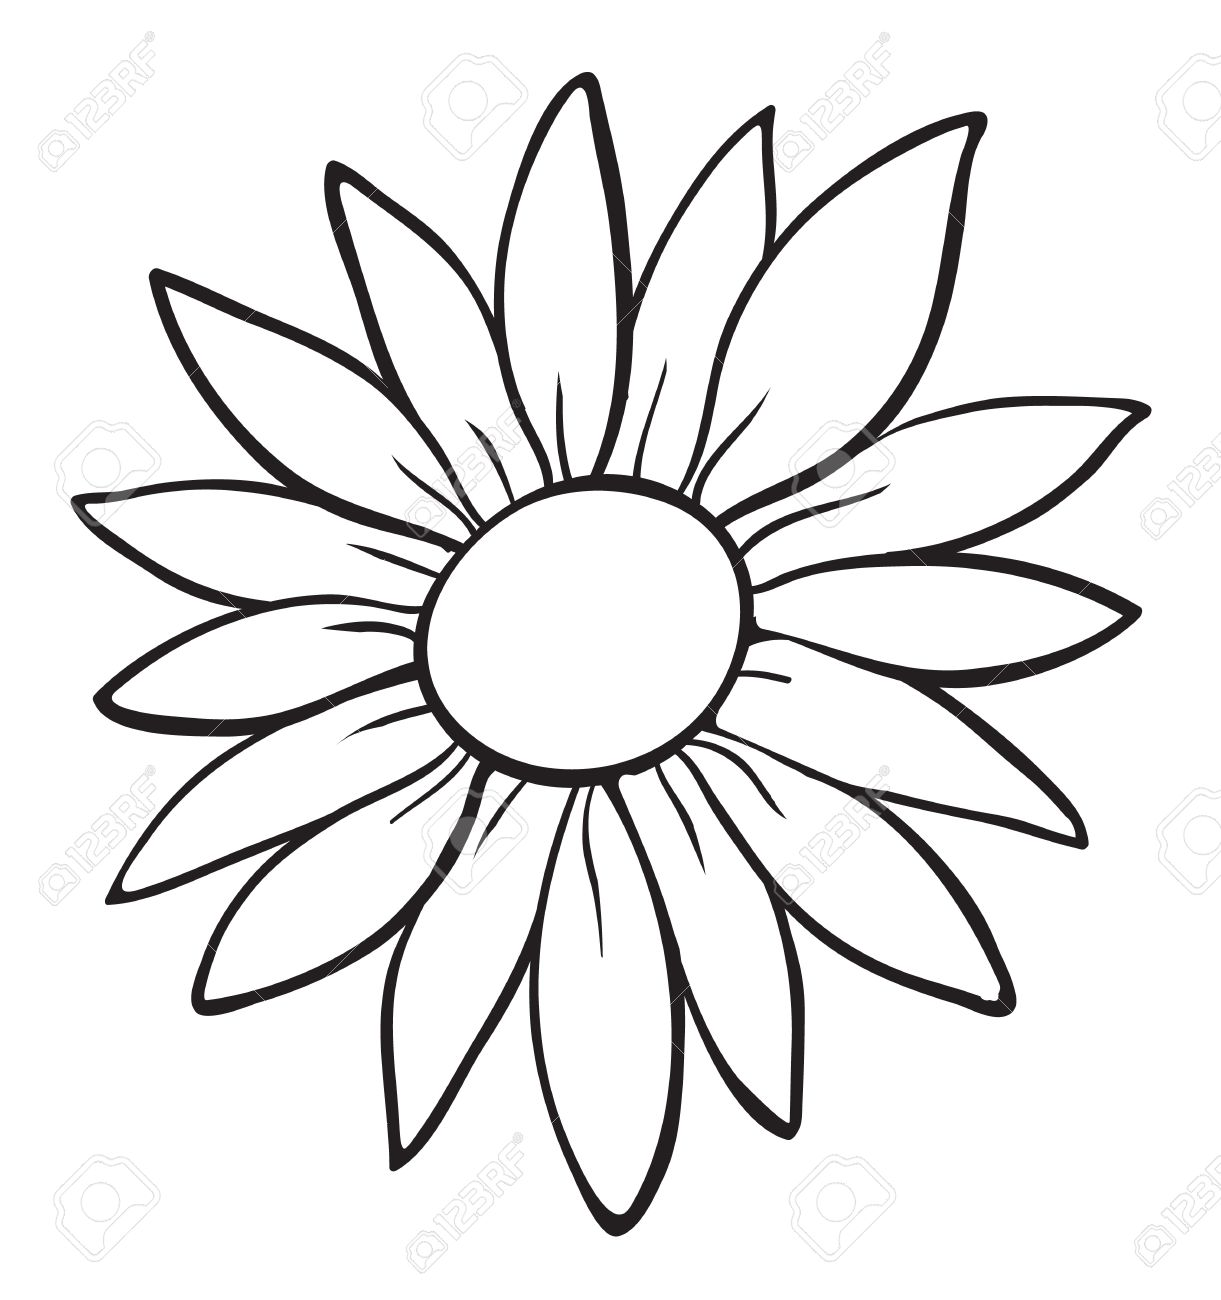 1221x1300 Eletragesi Easy Flower Drawing Outline Images